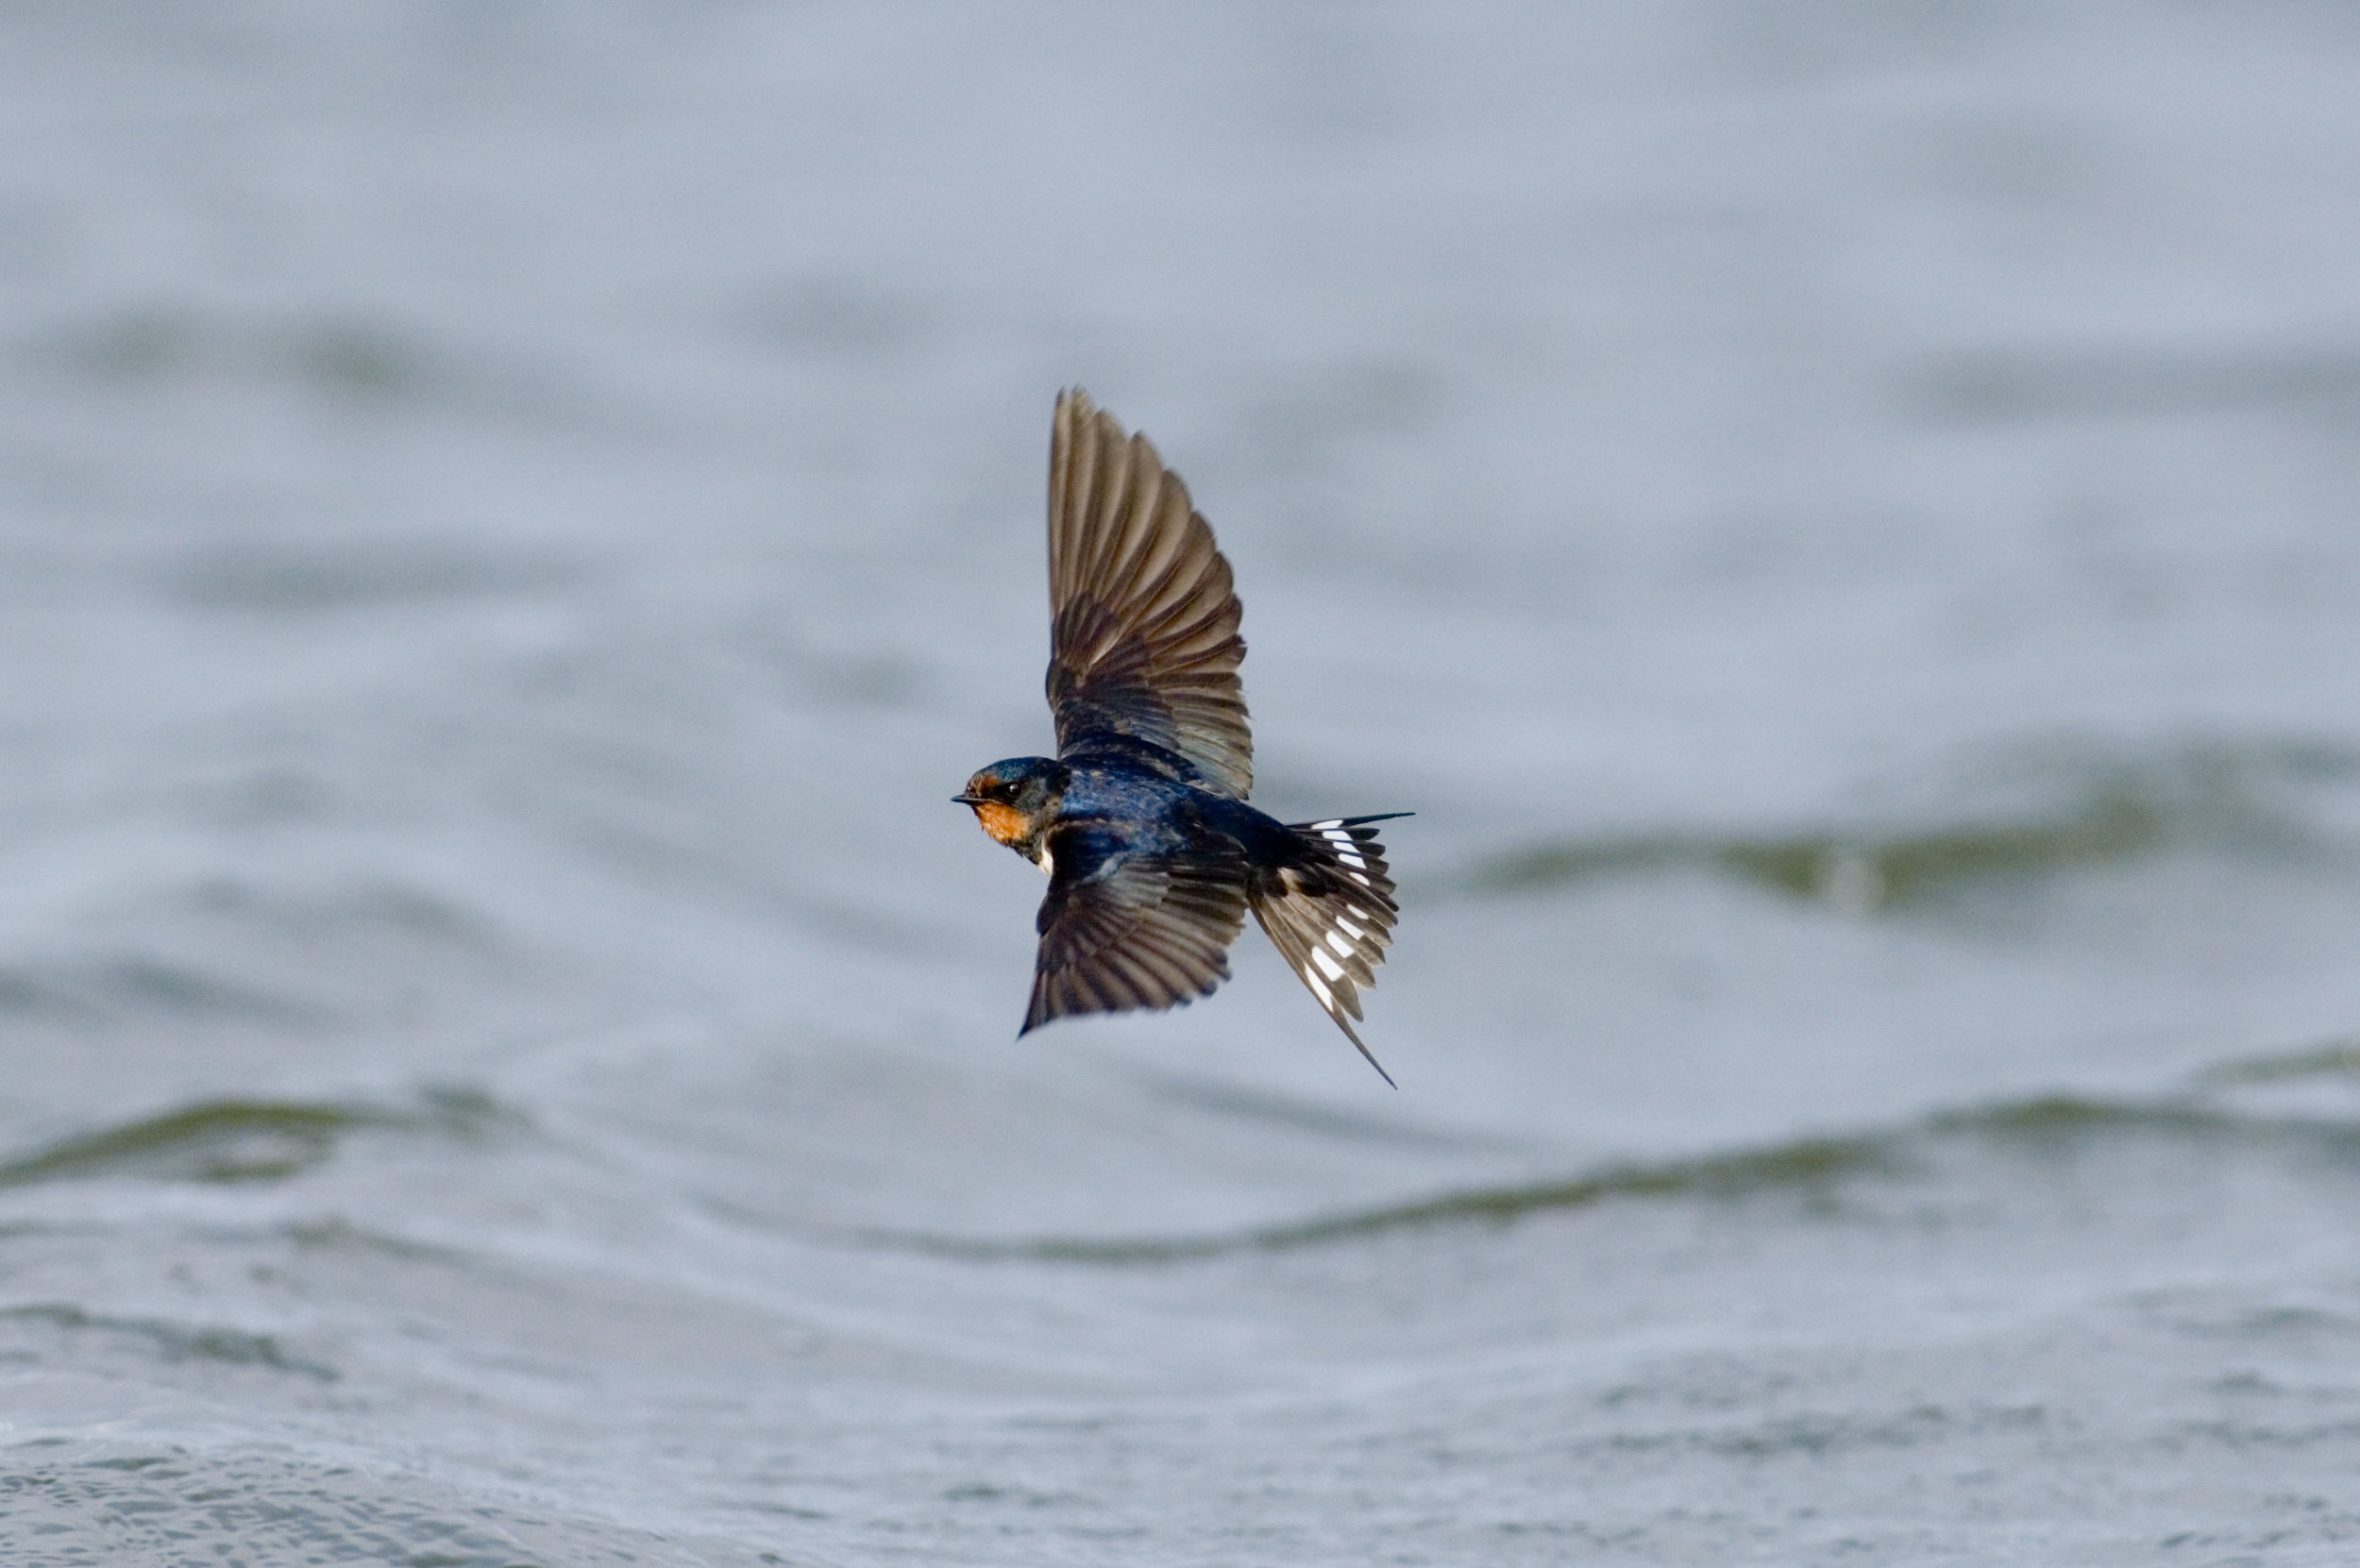 Swallow feeding over water